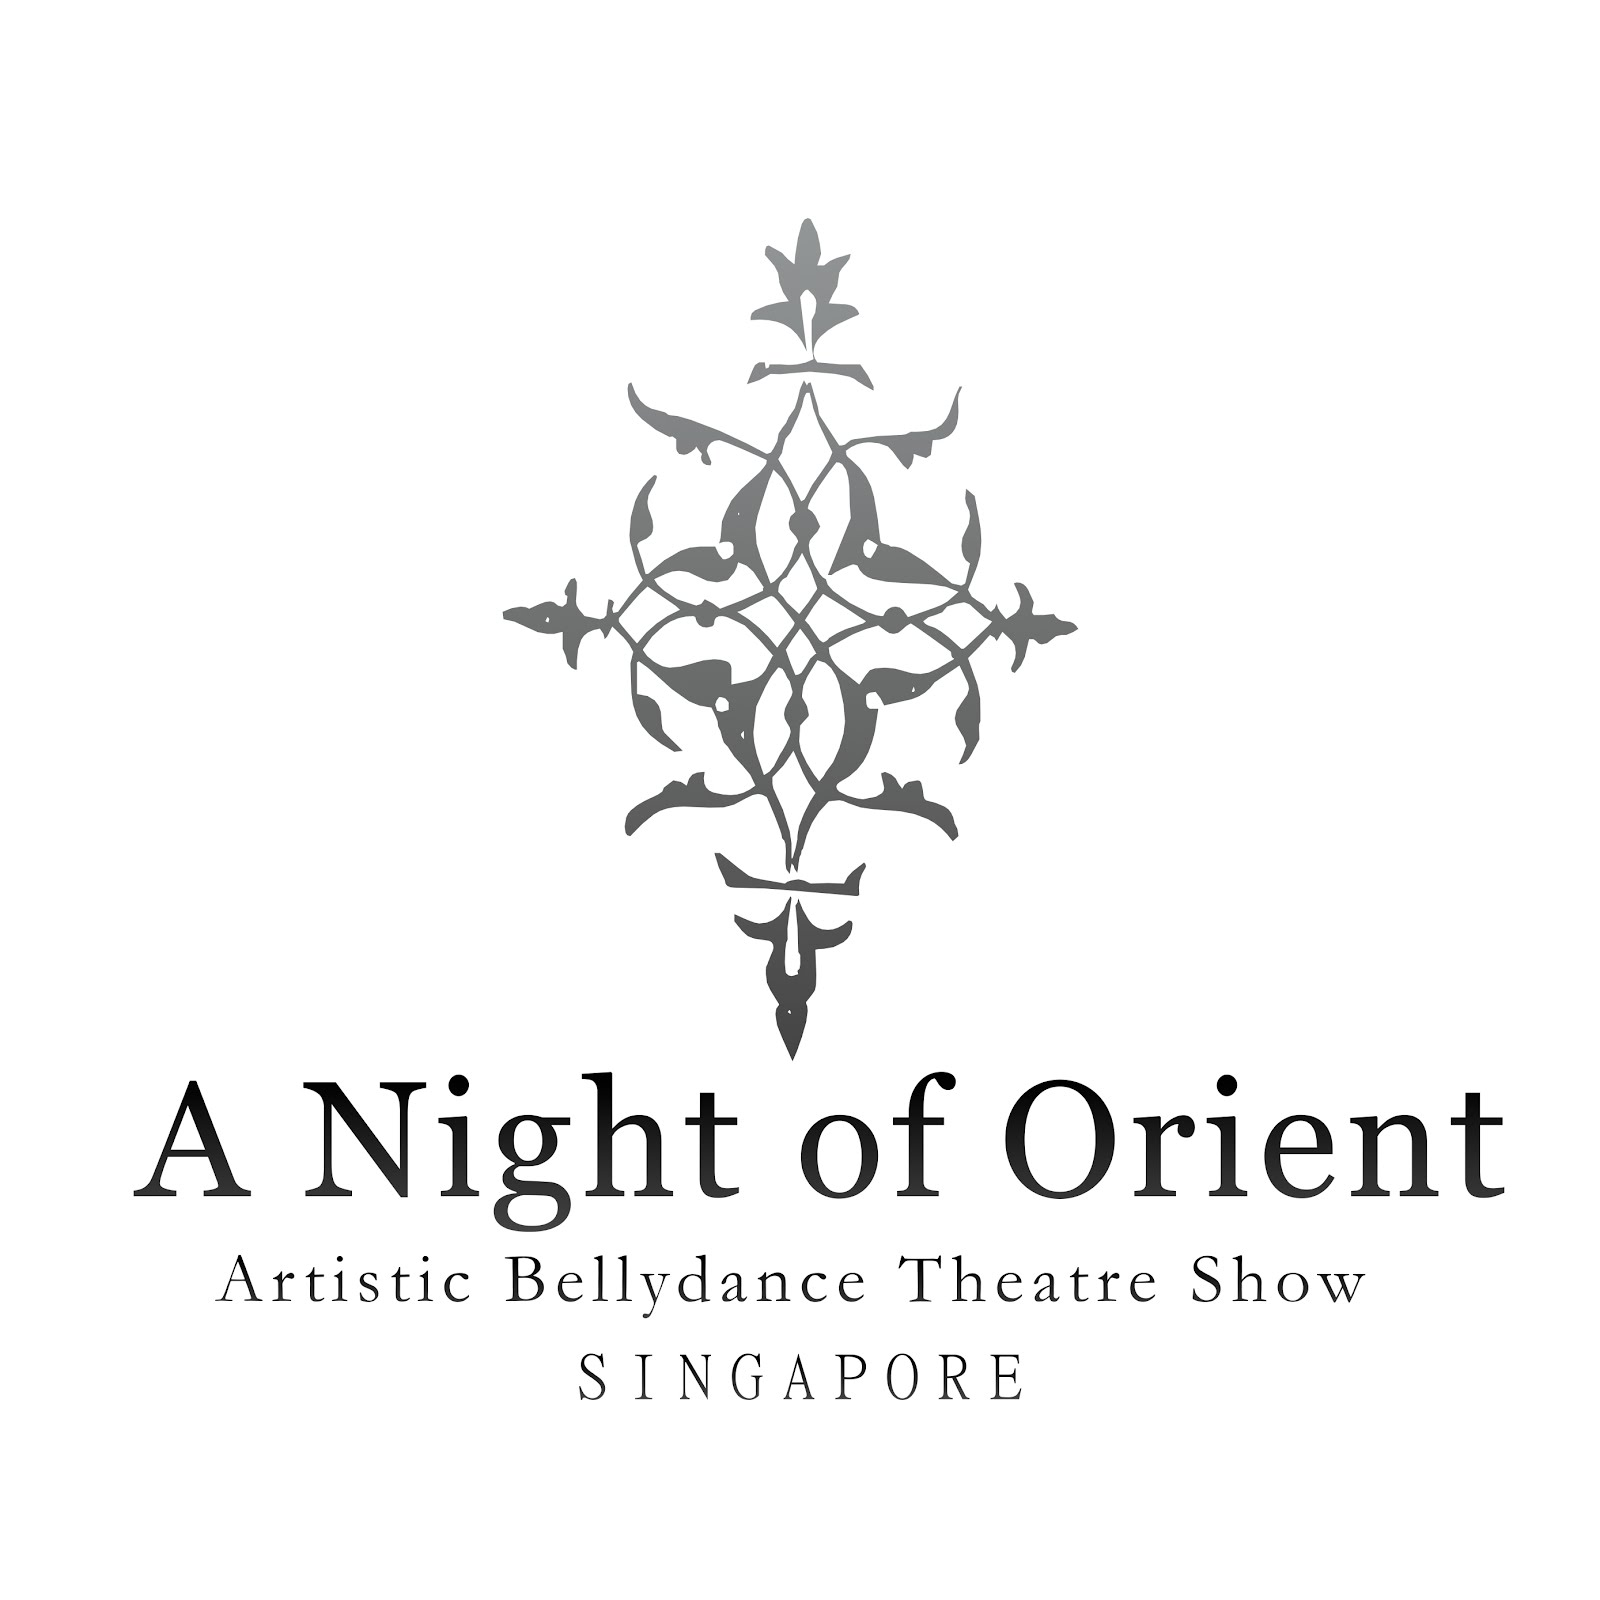 A Night of Orient - Artistic Bellydance Theatre Show